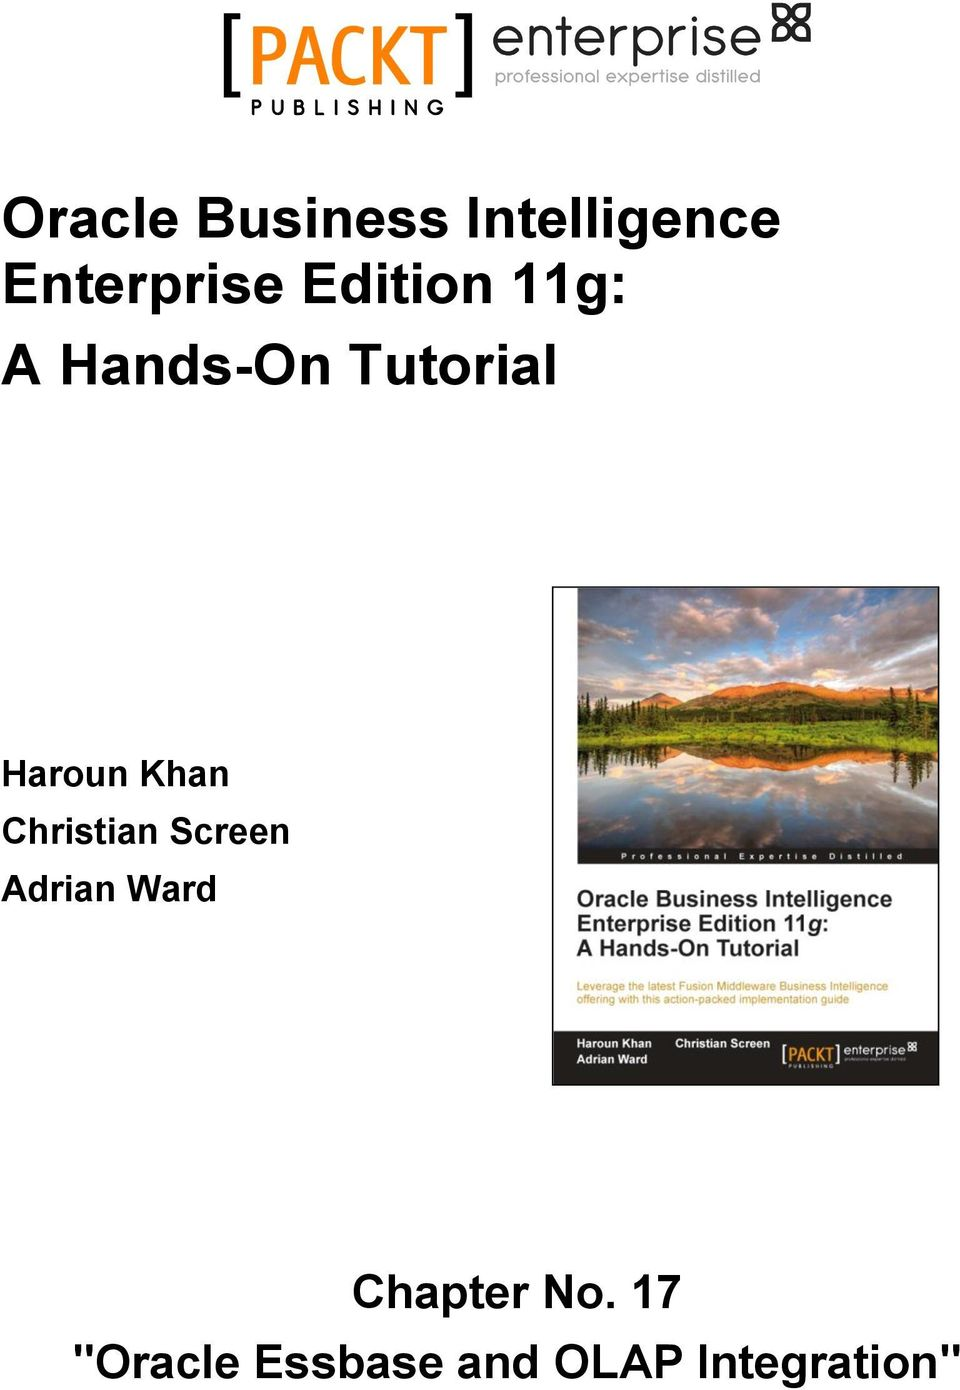 Oracle Business Intelligence Enterprise Edition 11g: A Hands